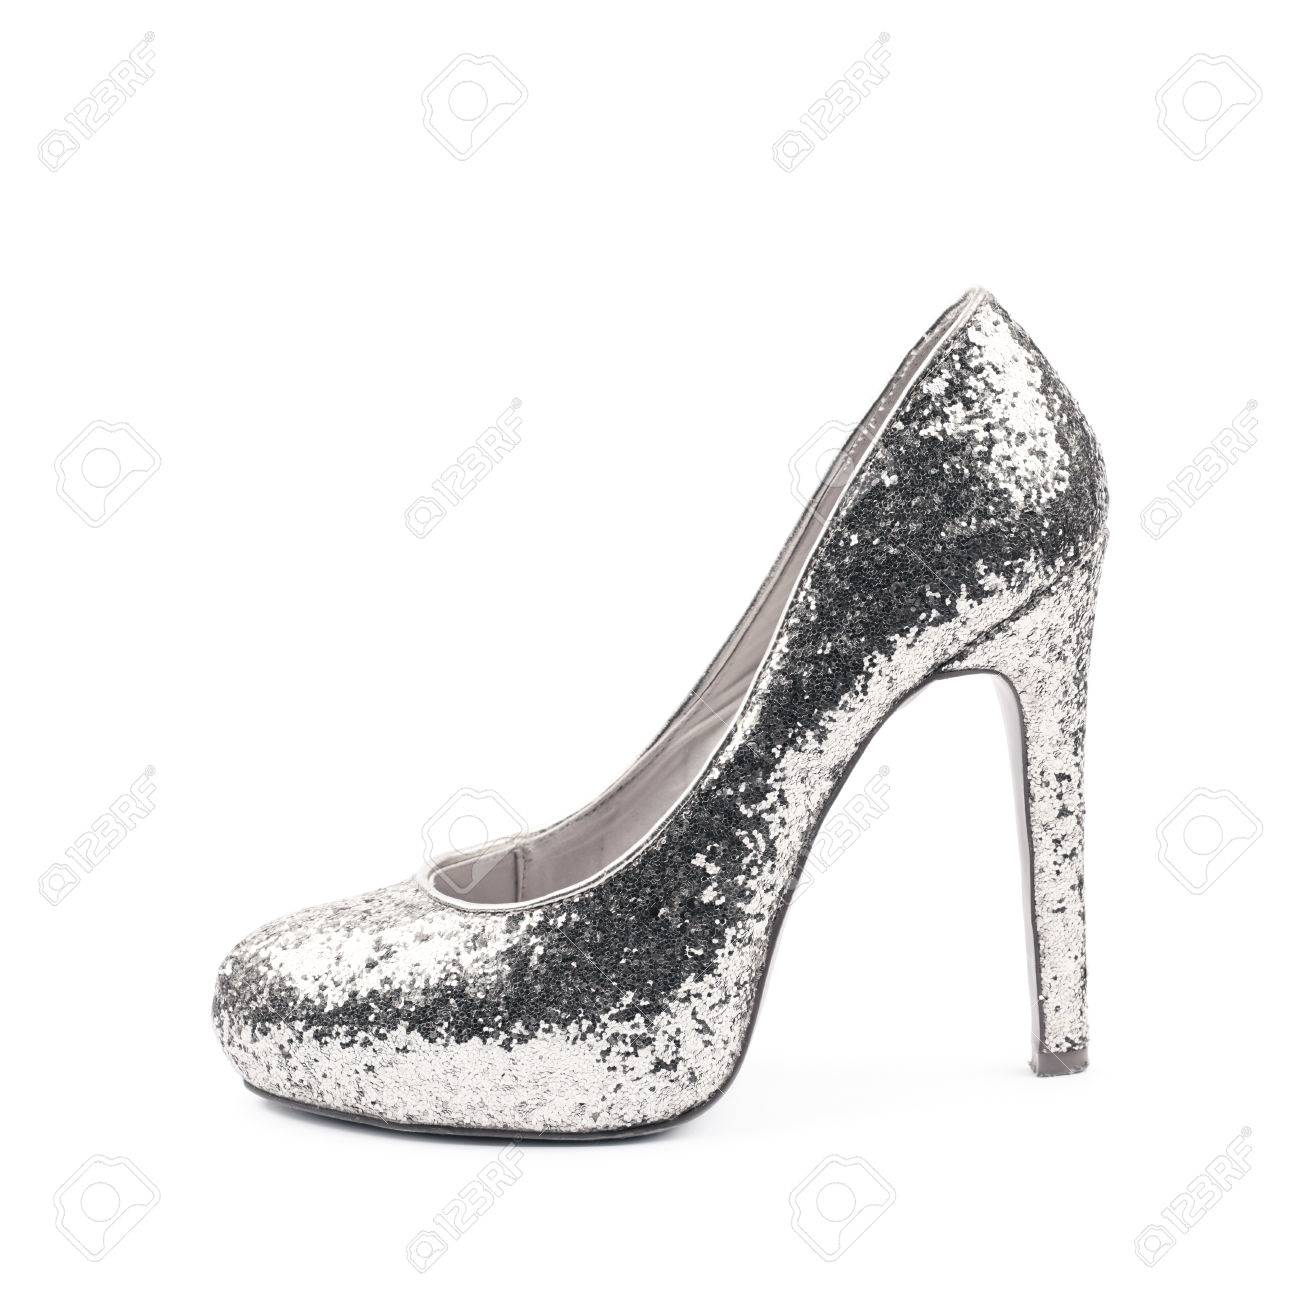 ba57540686c Shining silver high-heeled footwear shoe isolated over the white background  Stock Photo - 60706924